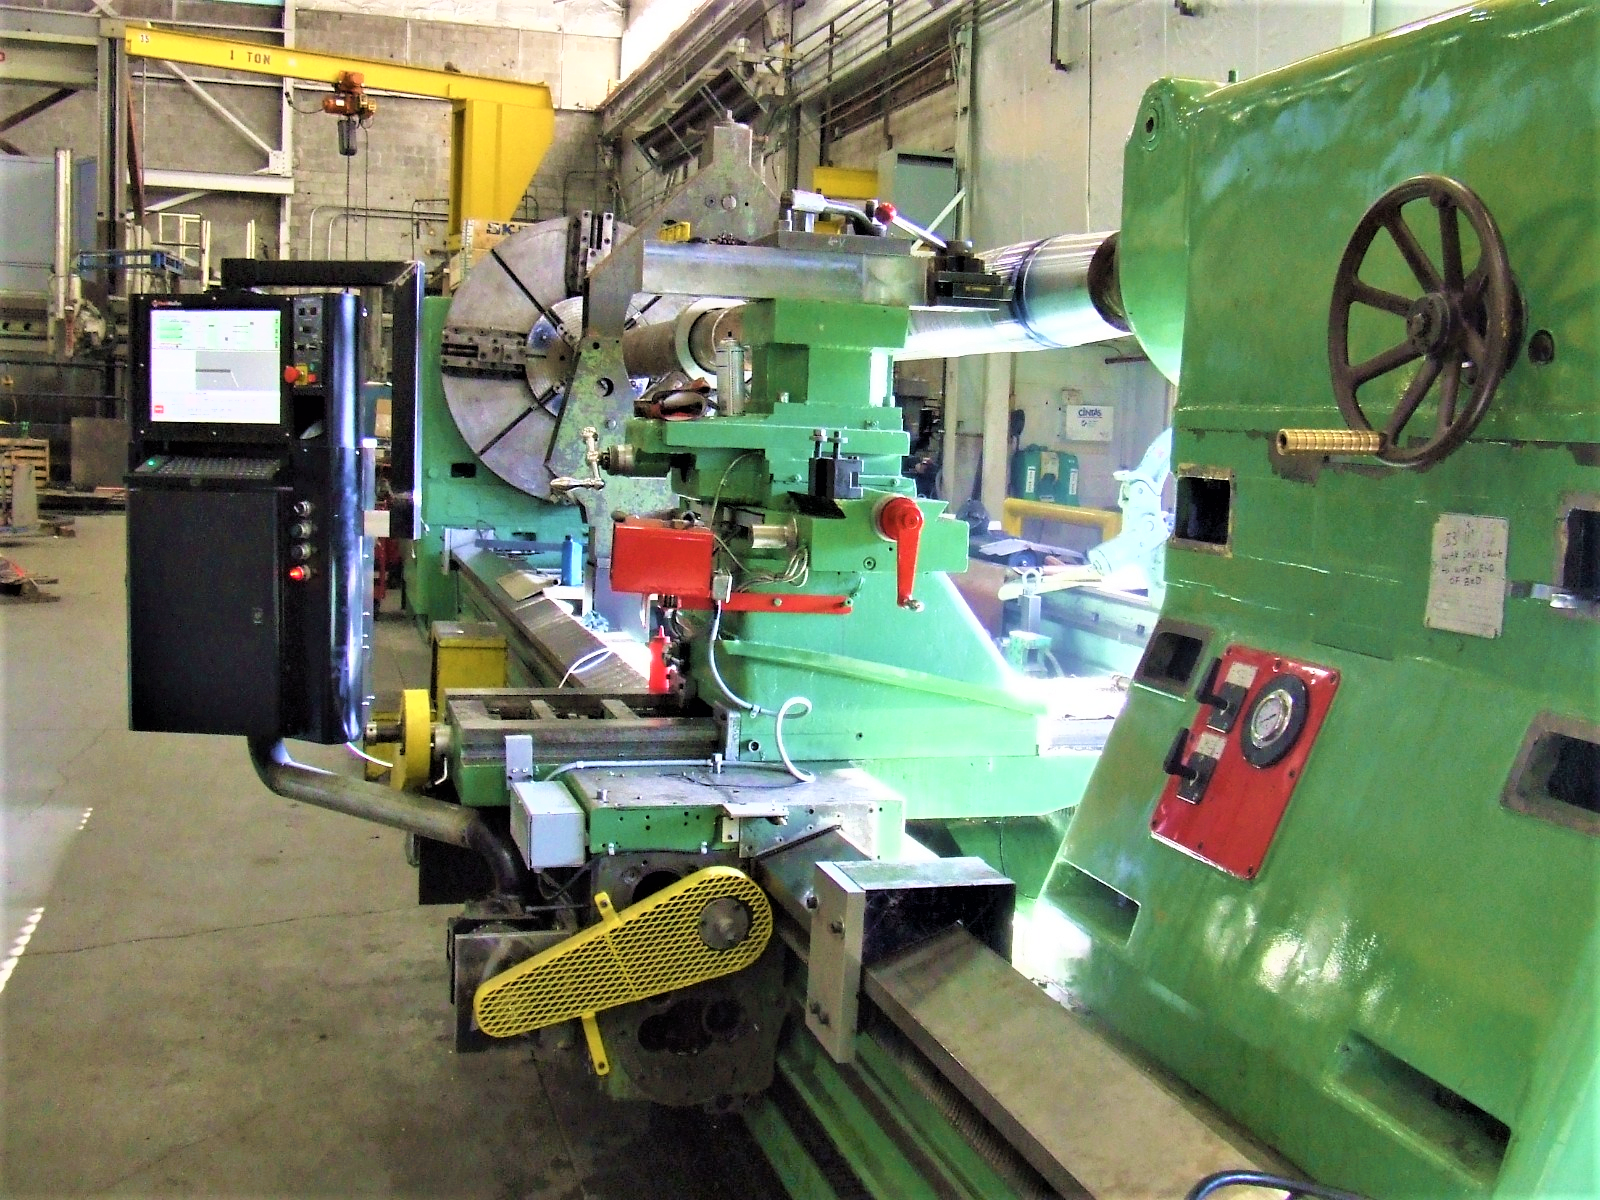 Heyligenstaedt Large Flat bed Lathe CNC Upgrade